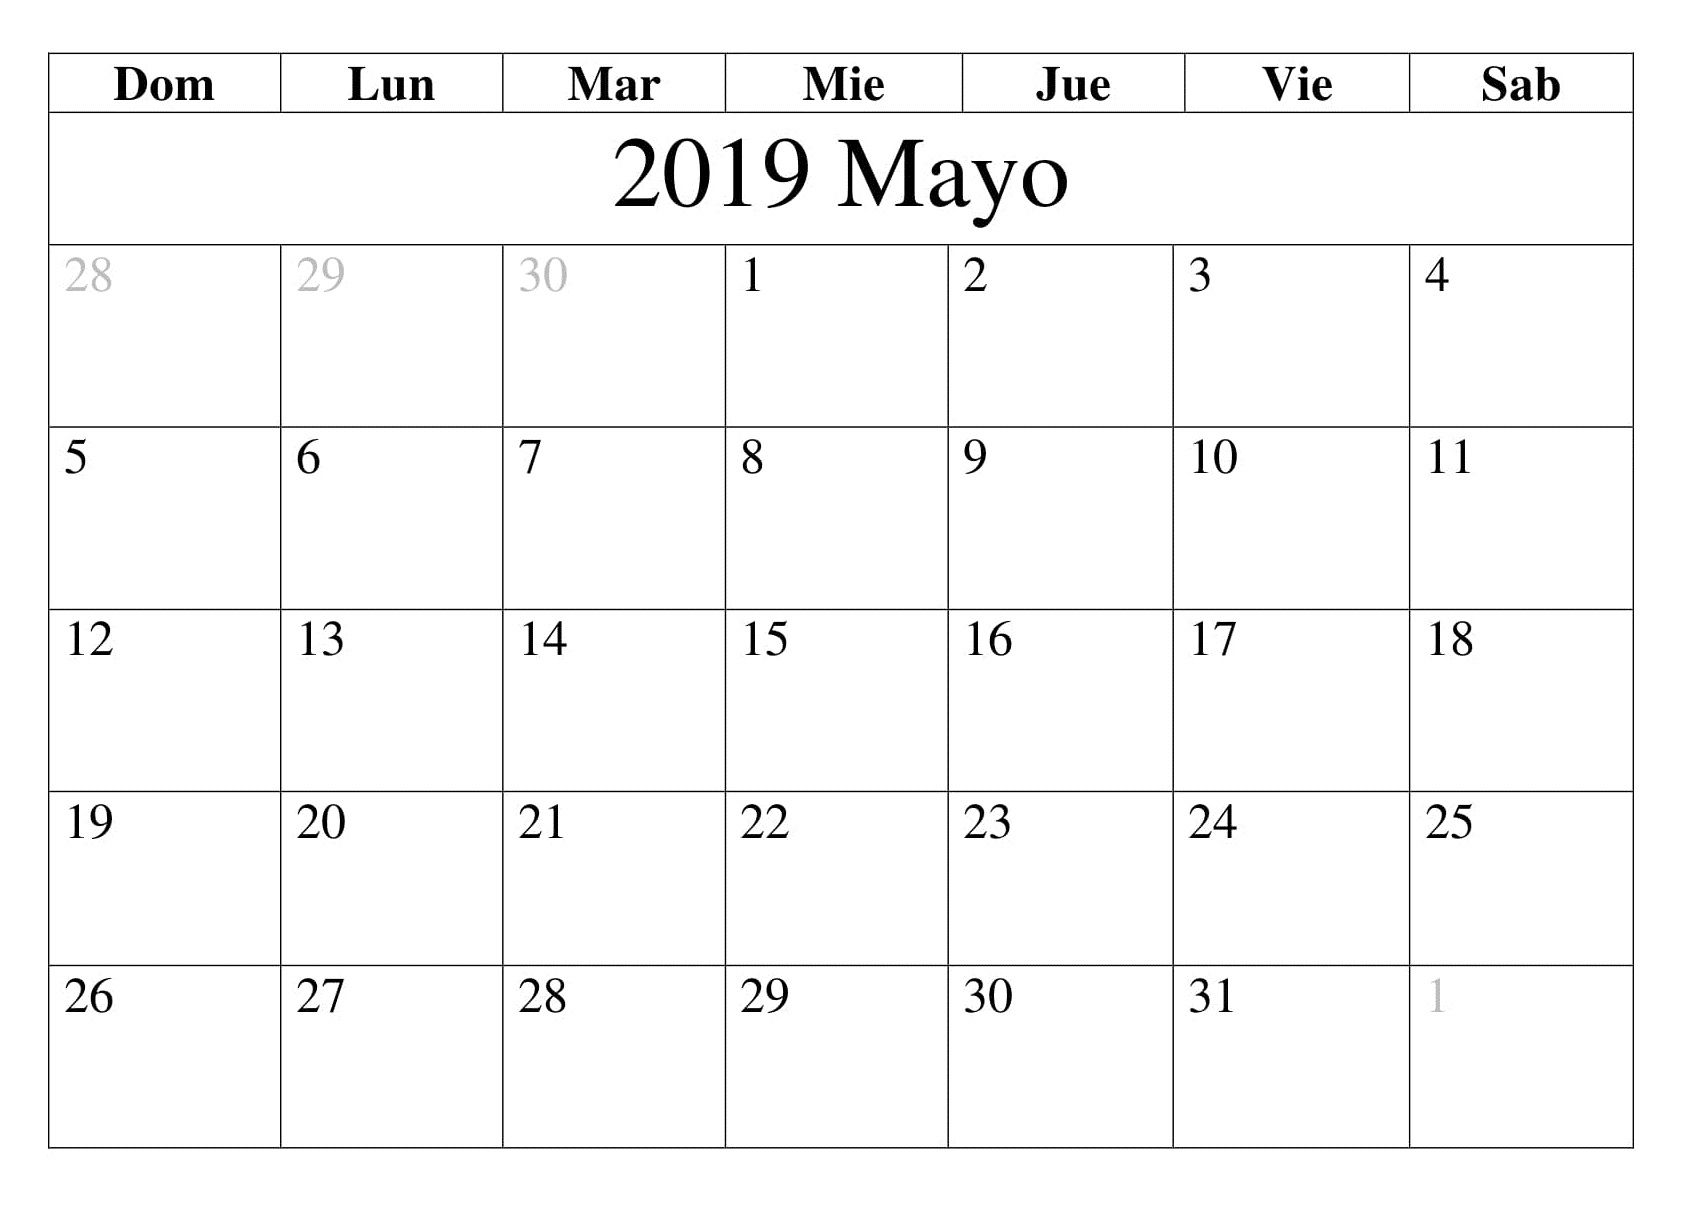 Calendario Blanco.Top 10 Punto Medio Noticias Calendario En Blanco Mayo 2019 Para